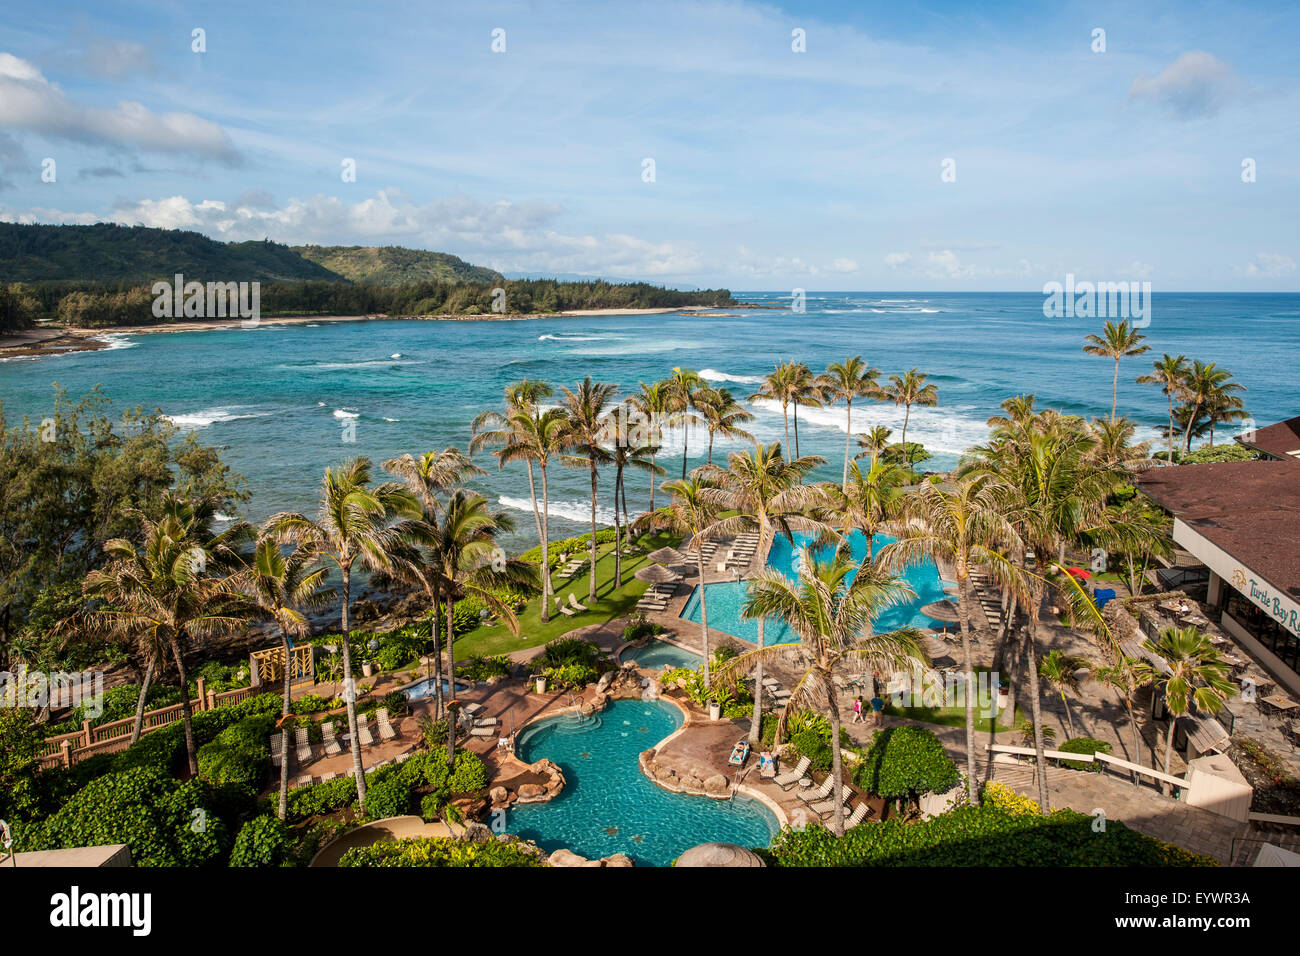 Turtle Bay Resort, North Shore, Oahu, Hawaii, United States of America, Pacific - Stock Image